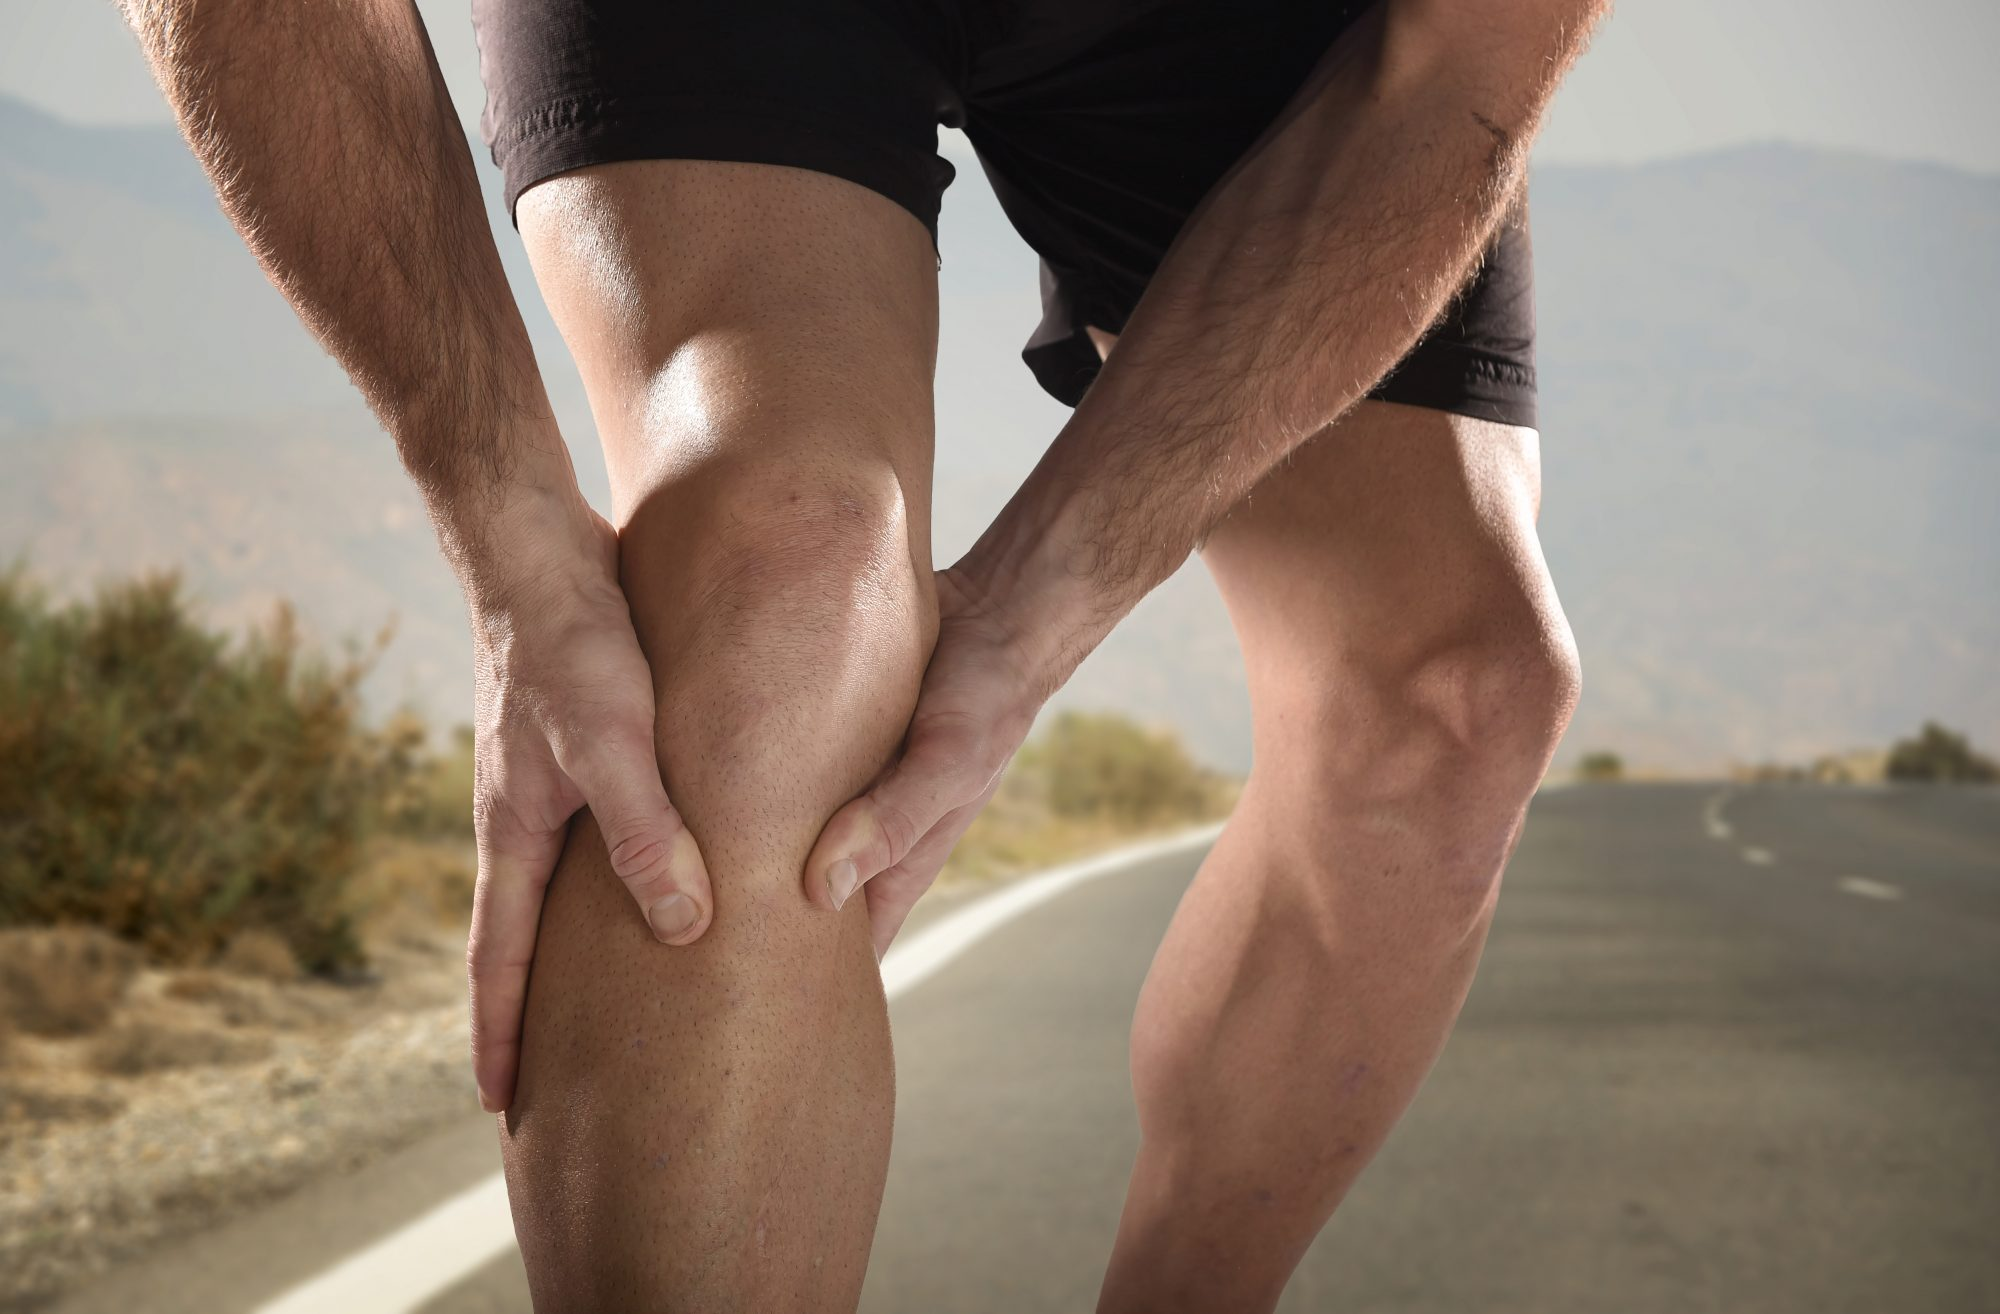 This Viral Video Shows the Most Bizarre-Looking Leg Cramp We've Ever Seen